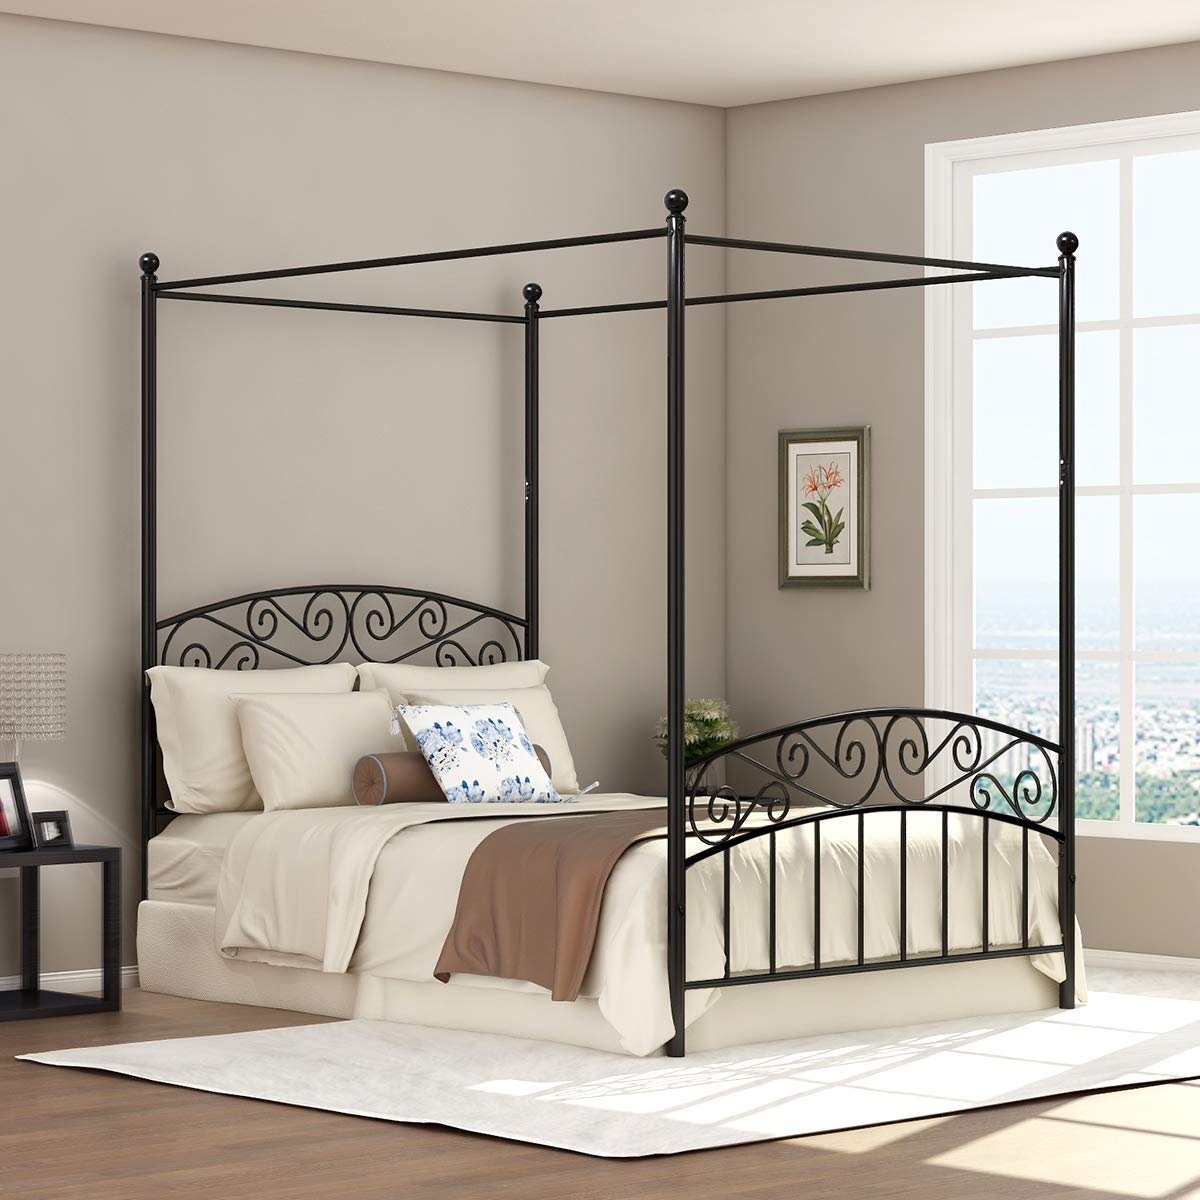 - Full Size Metal Canopy Bed Frame With Ornate European Style